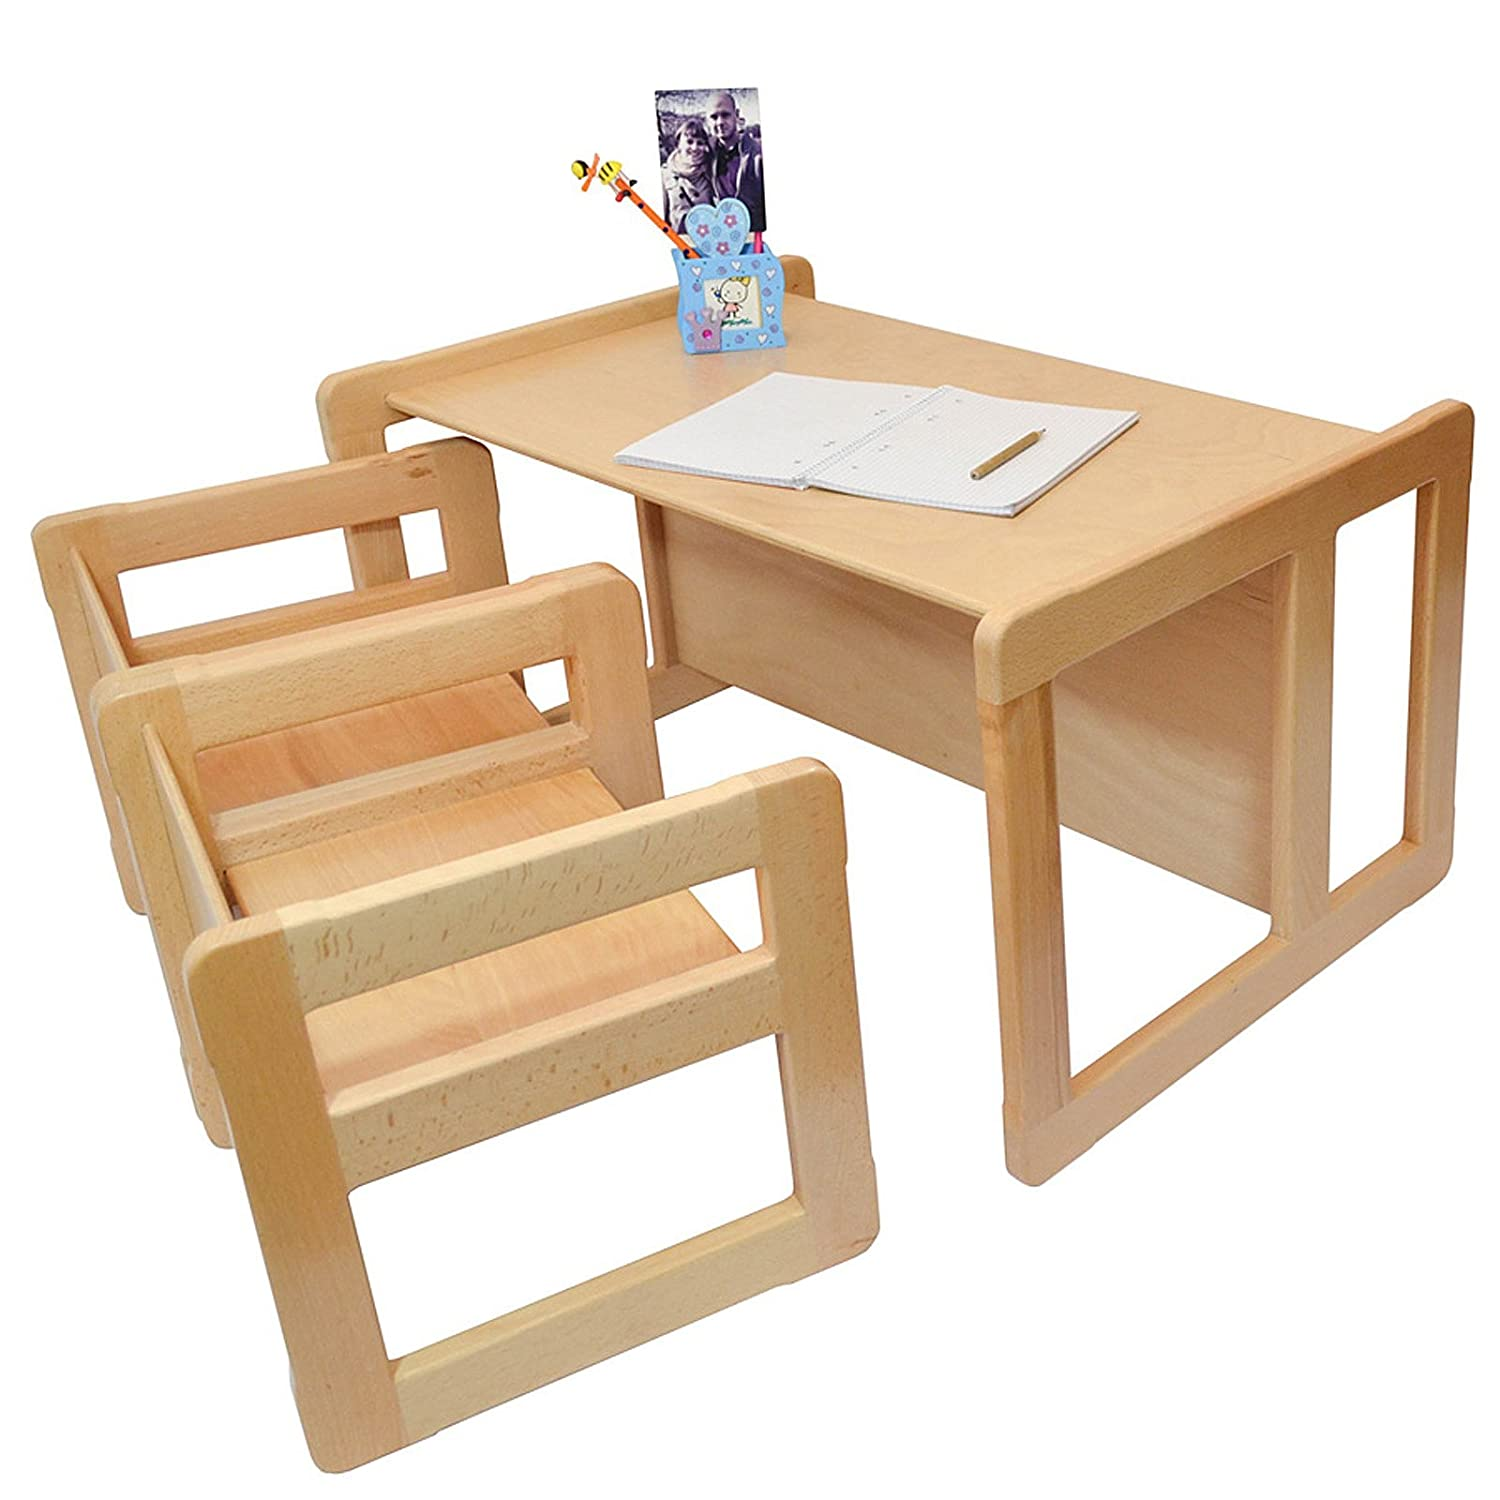 Obique 3 in 1 Children's Multifunctional Furniture Set of 3, Two Small Chairs Tables One Large Bench Table Beech Wood, Natural OB_SET_O_00027